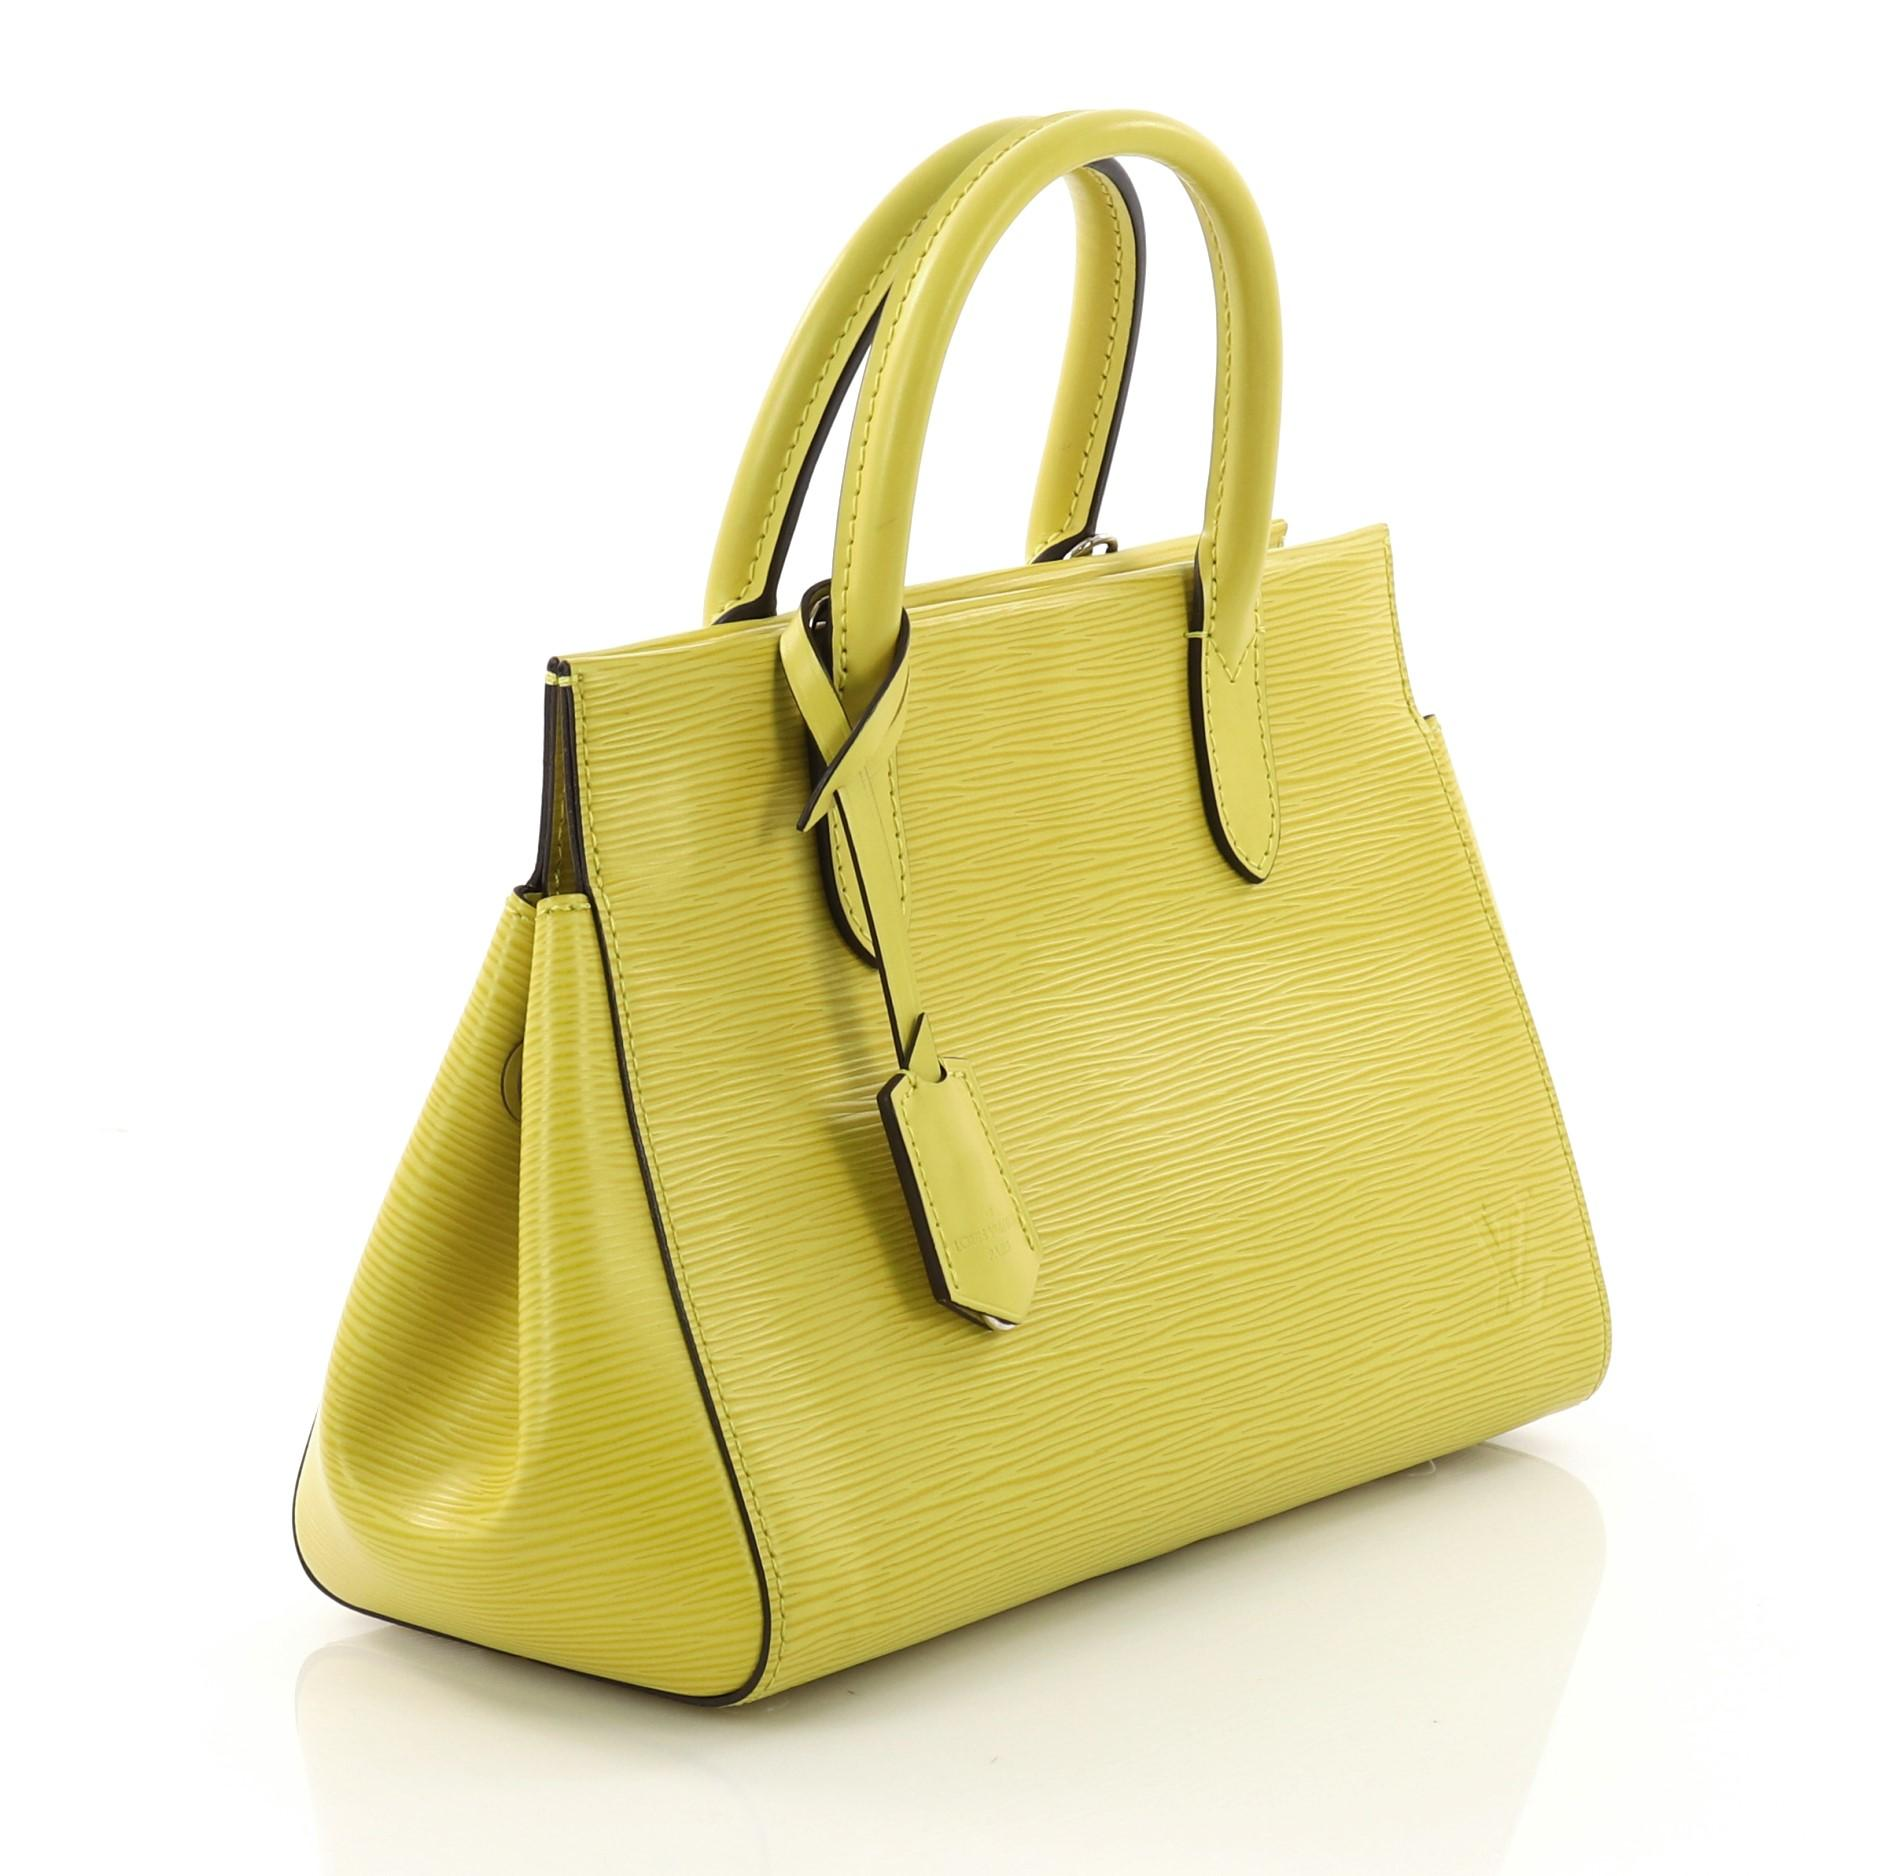 4d9675241225 Louis Vuitton Marly Handbag Epi Leather BB For Sale at 1stdibs